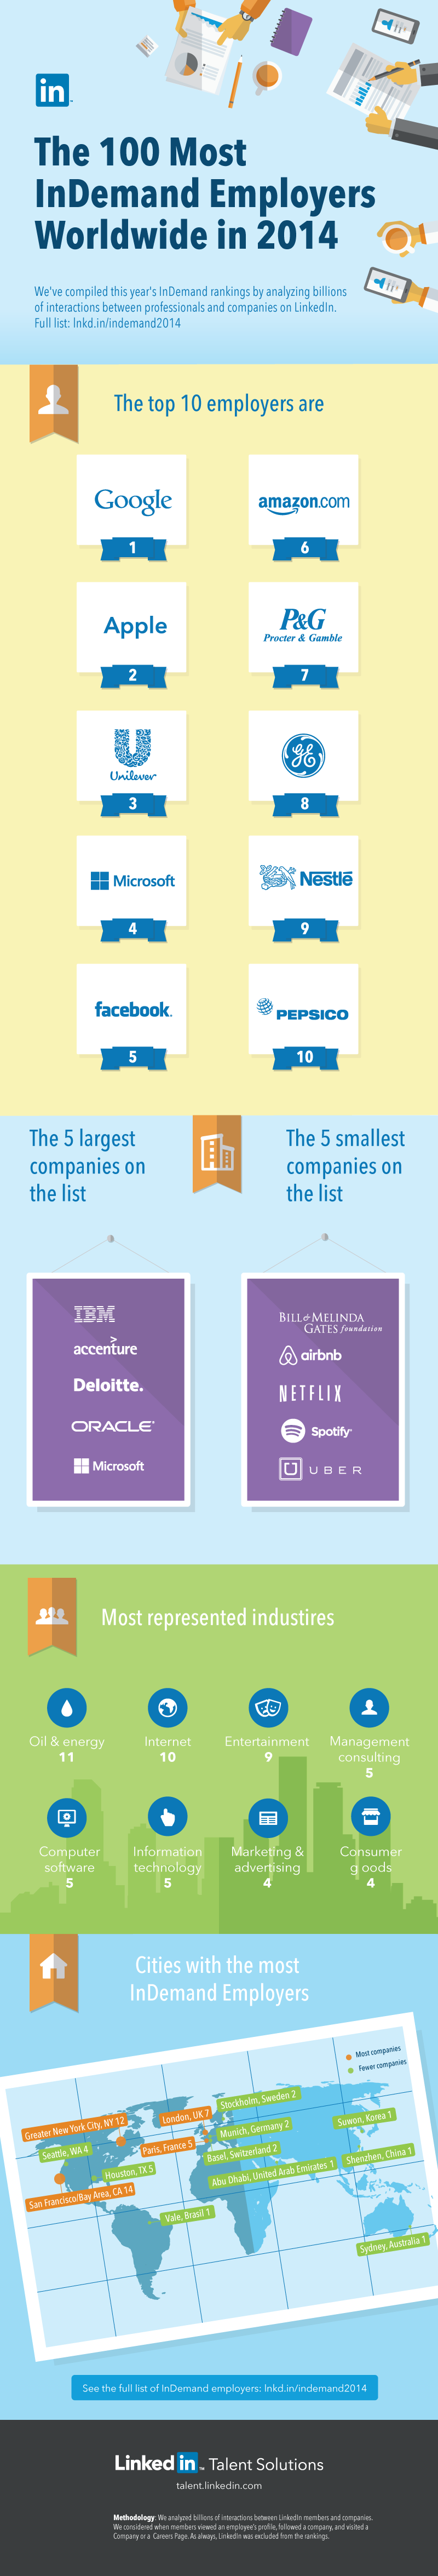 Most-InDemand-Employers-in-the-world-infographic